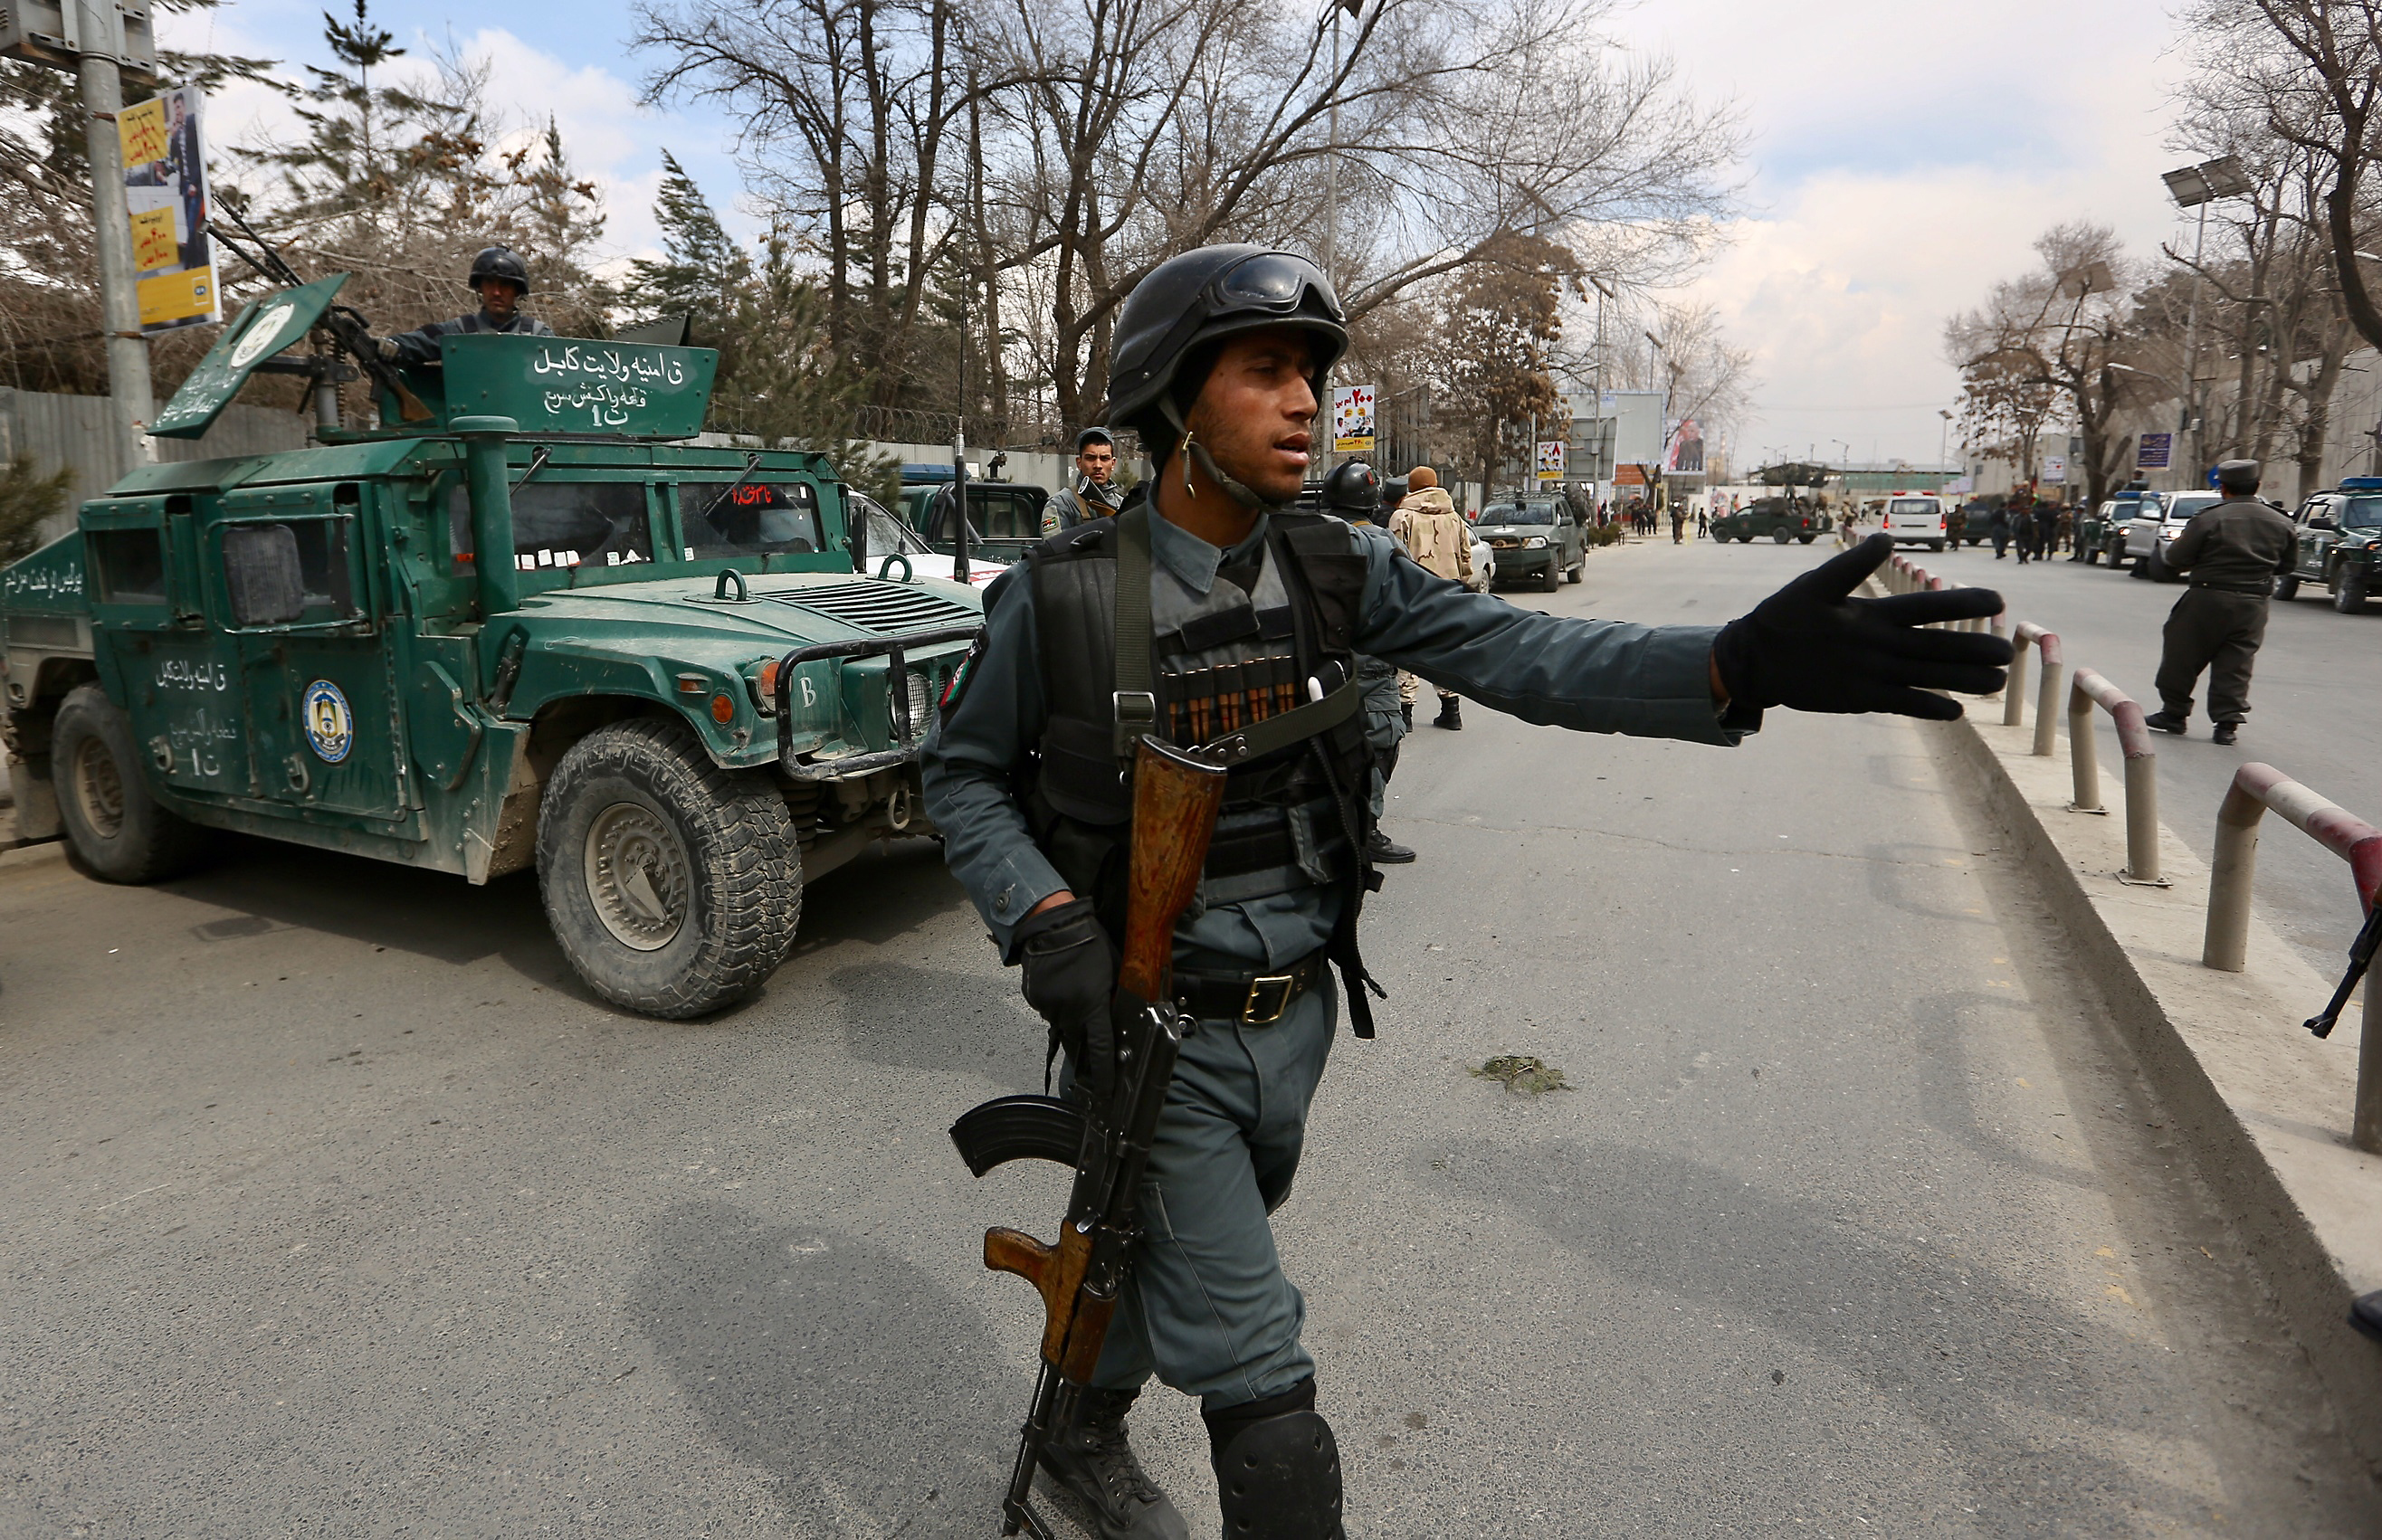 Security forces inspect the site of attack on a military hospital in Kabul, Afghanistan on March 8, 2017. (AP Photo/Rahmat Gul)